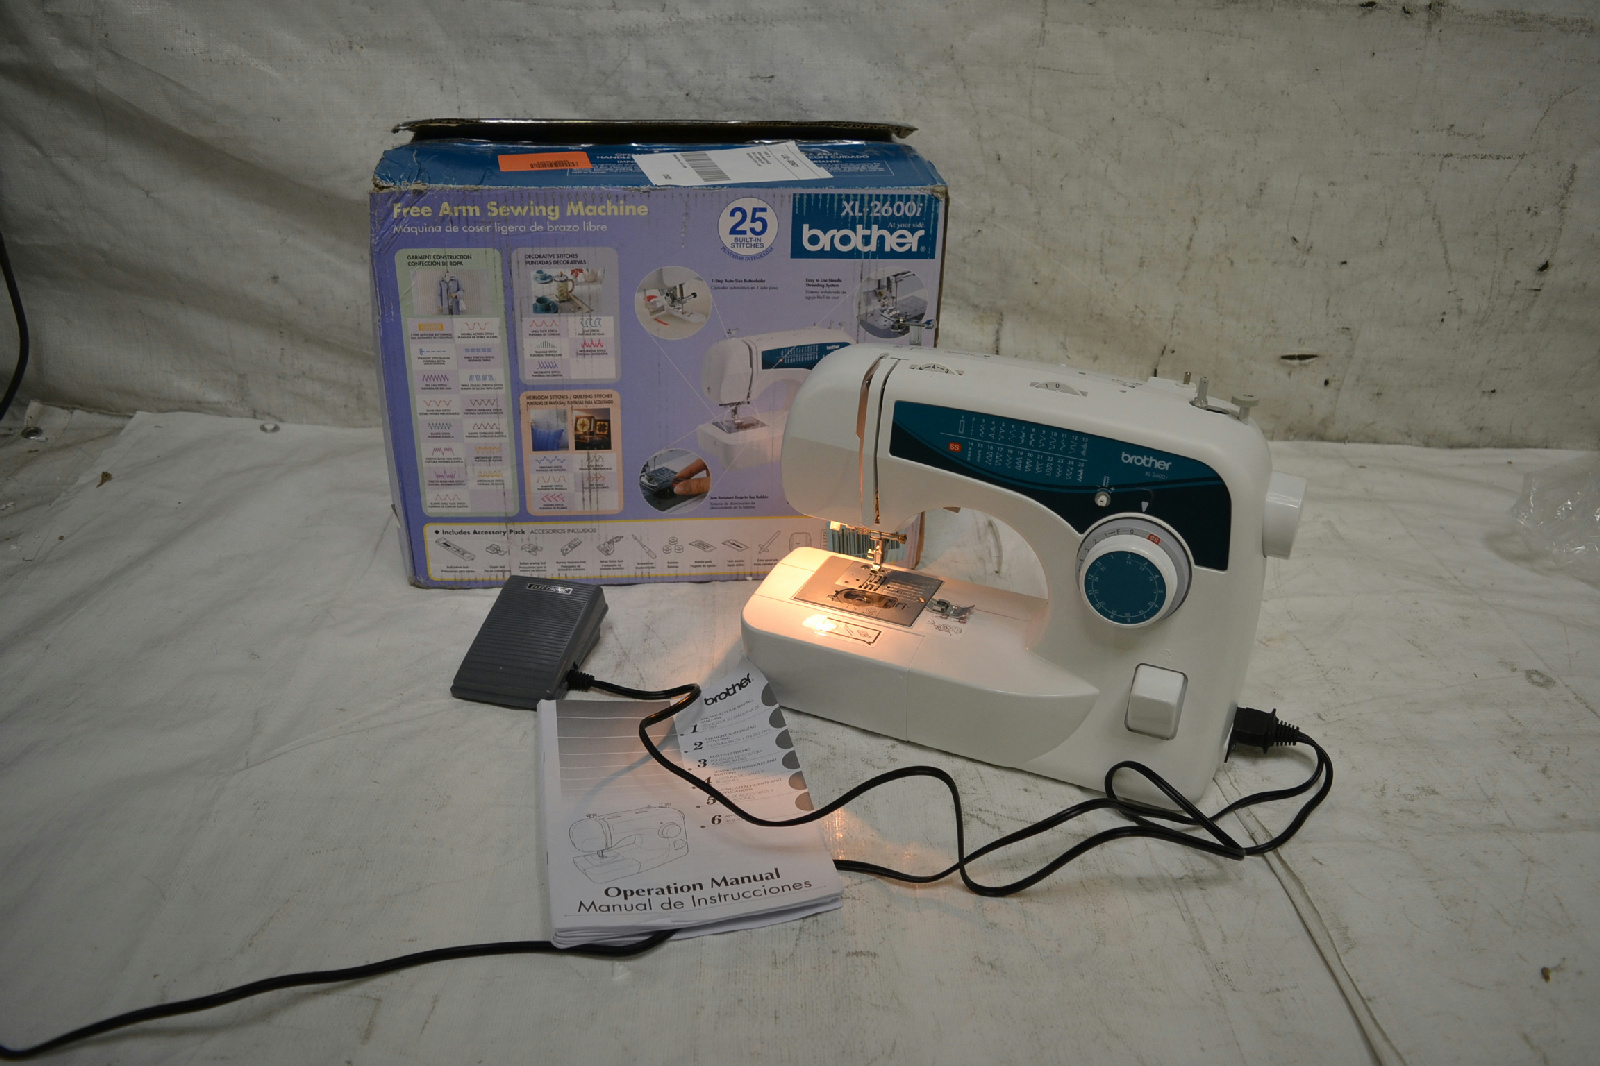 Brother xl2600i sew advance sew affordable 25 stitch free for Machine a coudre xl 2600 brother